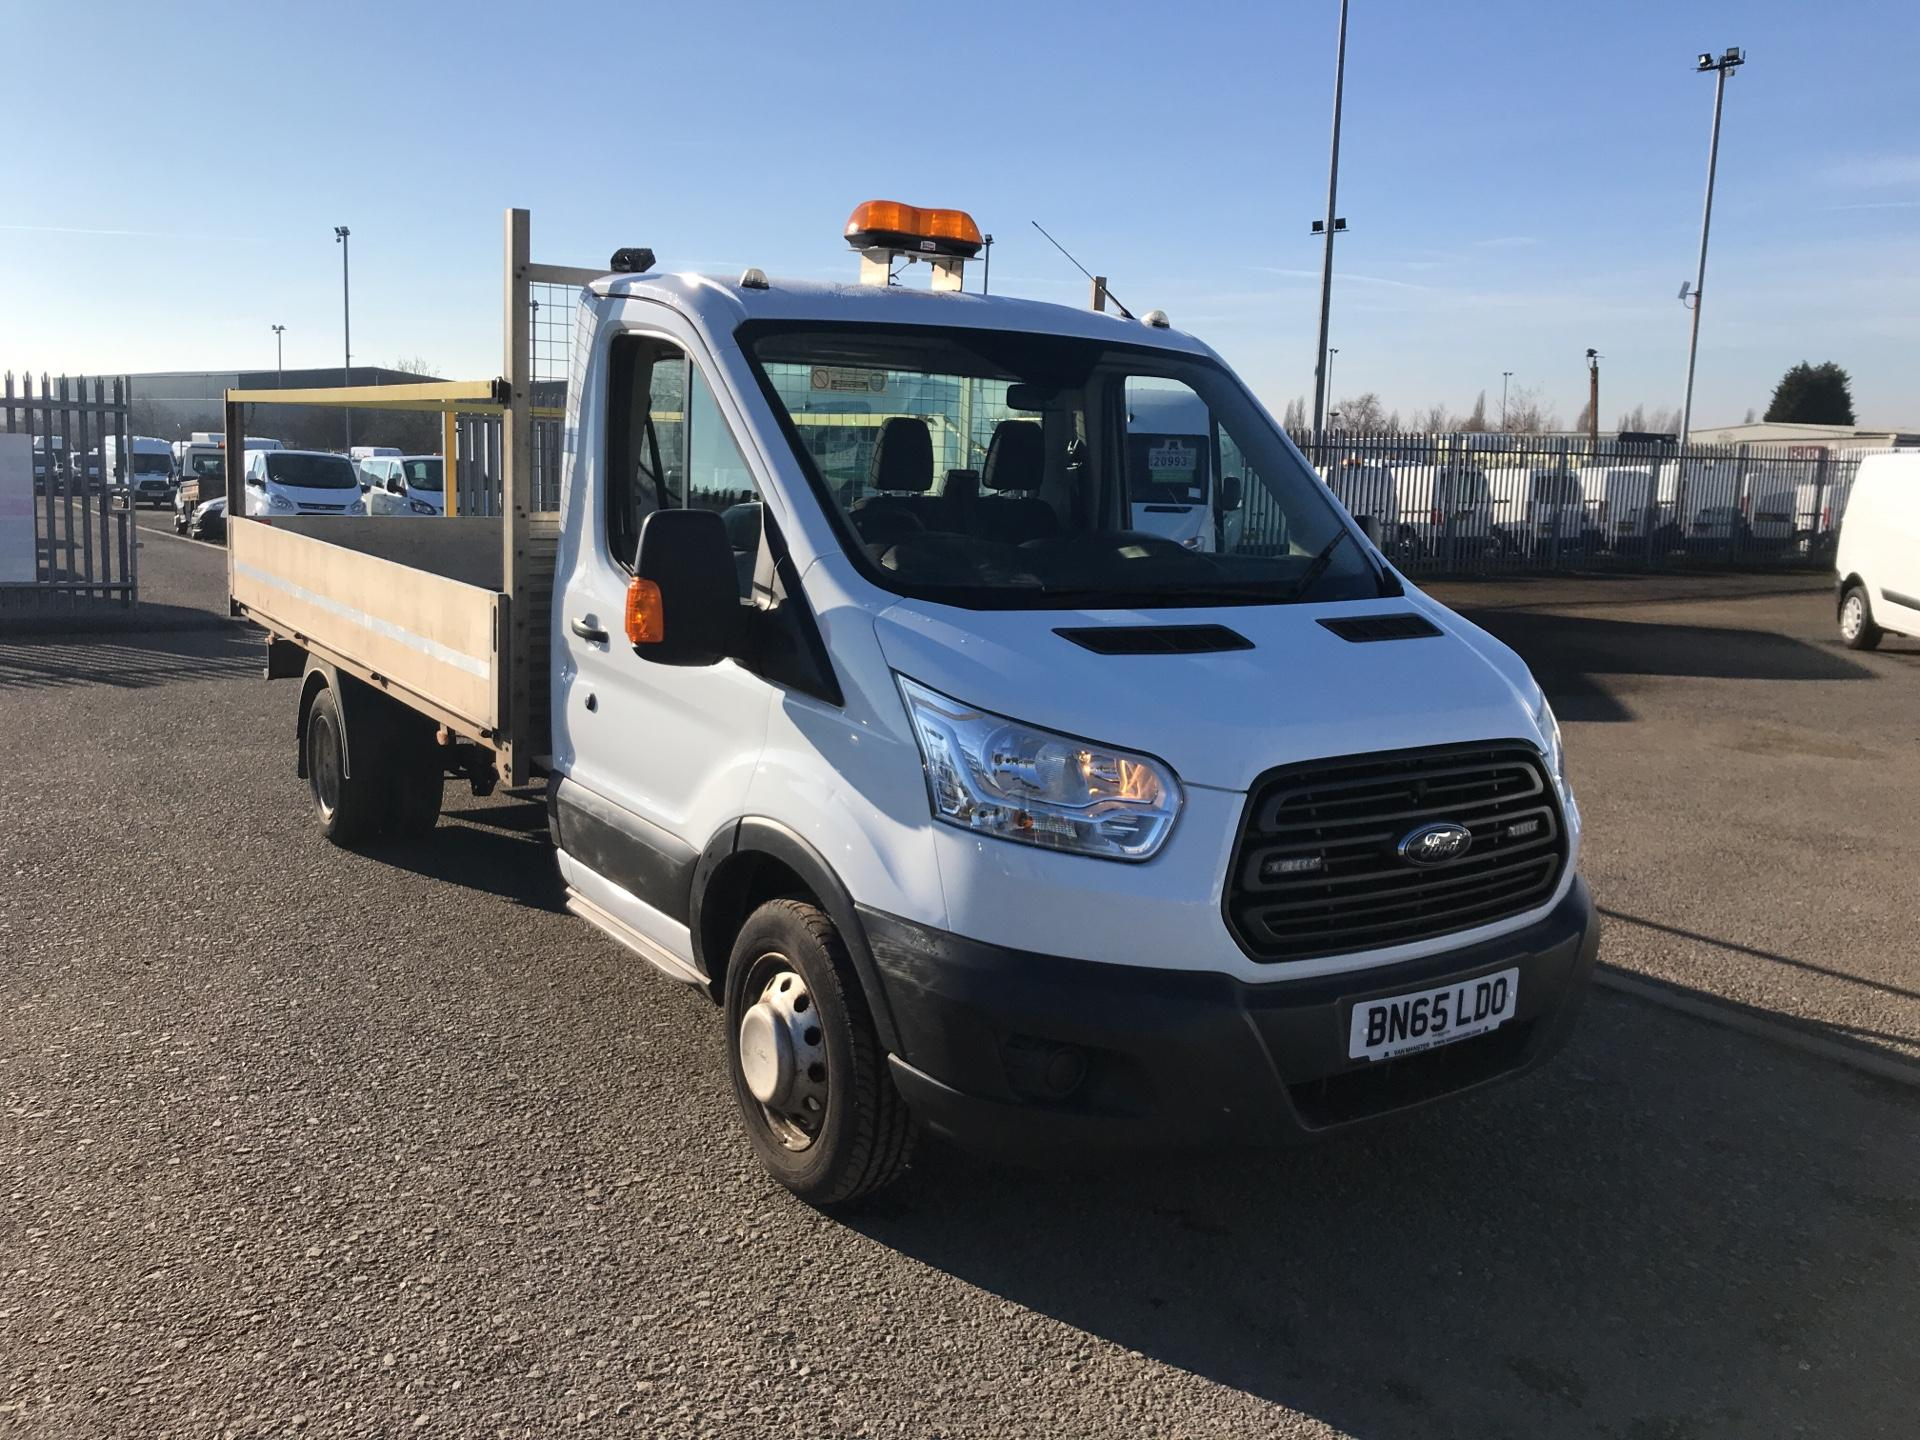 2015 Ford Transit 350 L4 DROP SIDE 125PS EURO 5 (BN65LDO) Thumbnail 1